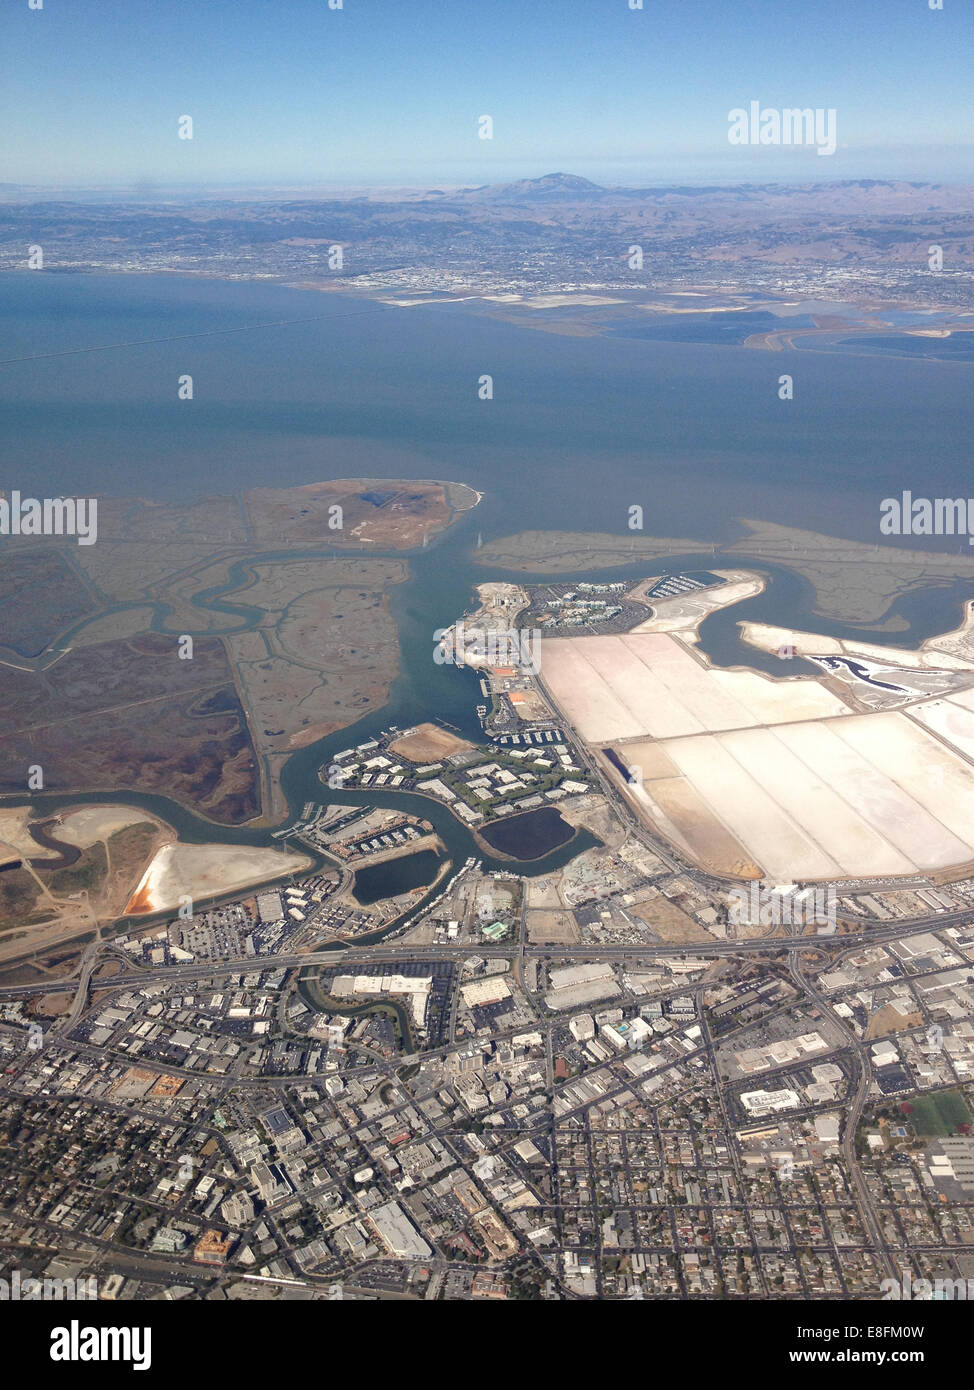 San Francisco, California, United States of America City And Sea Scape From Above - Stock Image